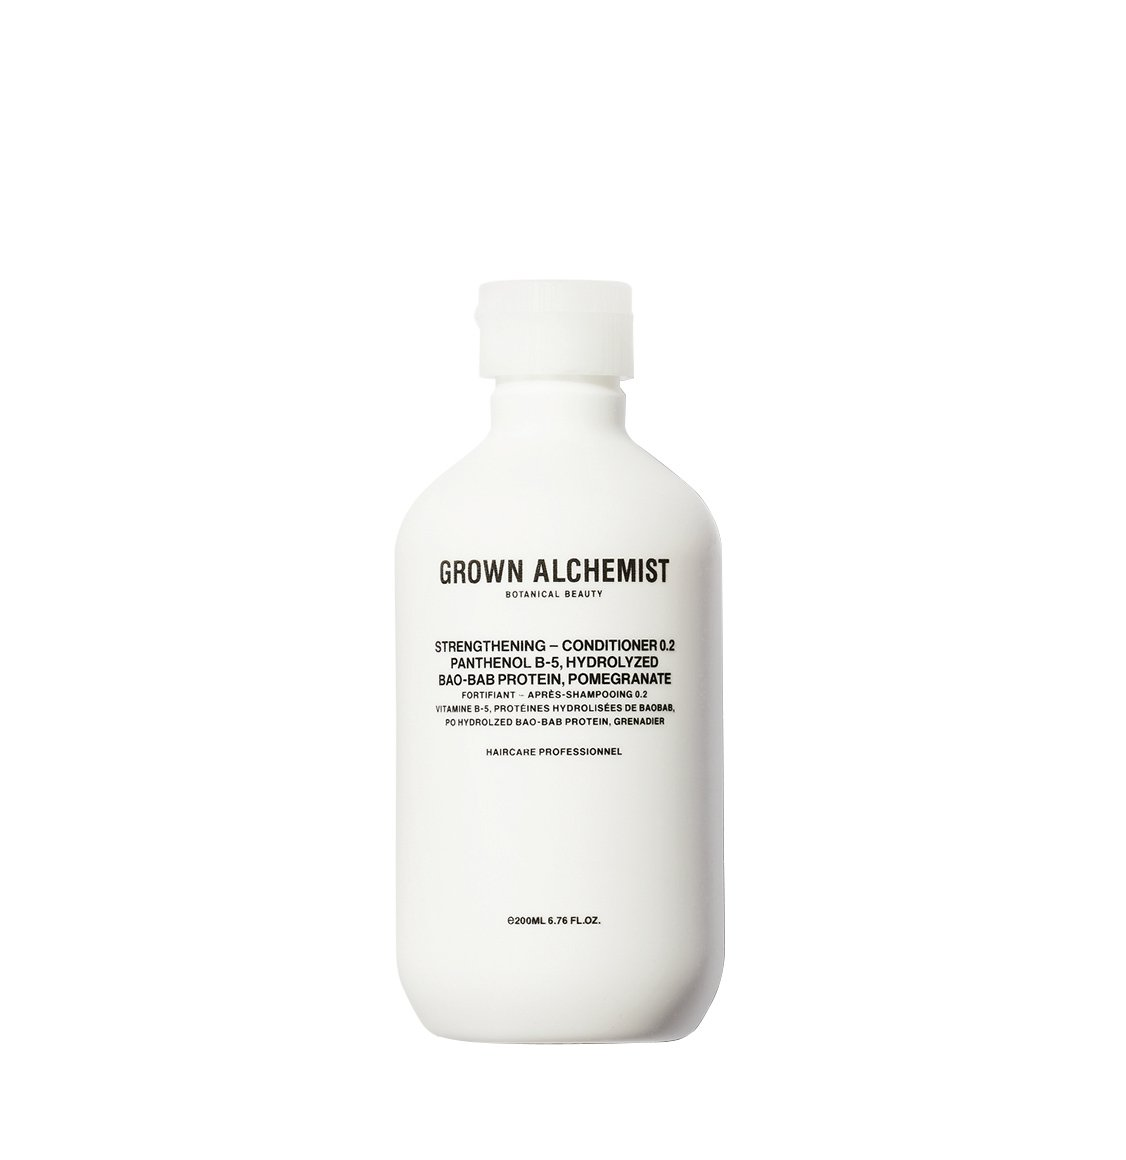 Grown_Alchemist_Strengthening_Conditioner_0.2_Panthenol_B5_Hydrolyzed_Bao-Bab_Protein_Pomegranate_The_Project_Garments_A